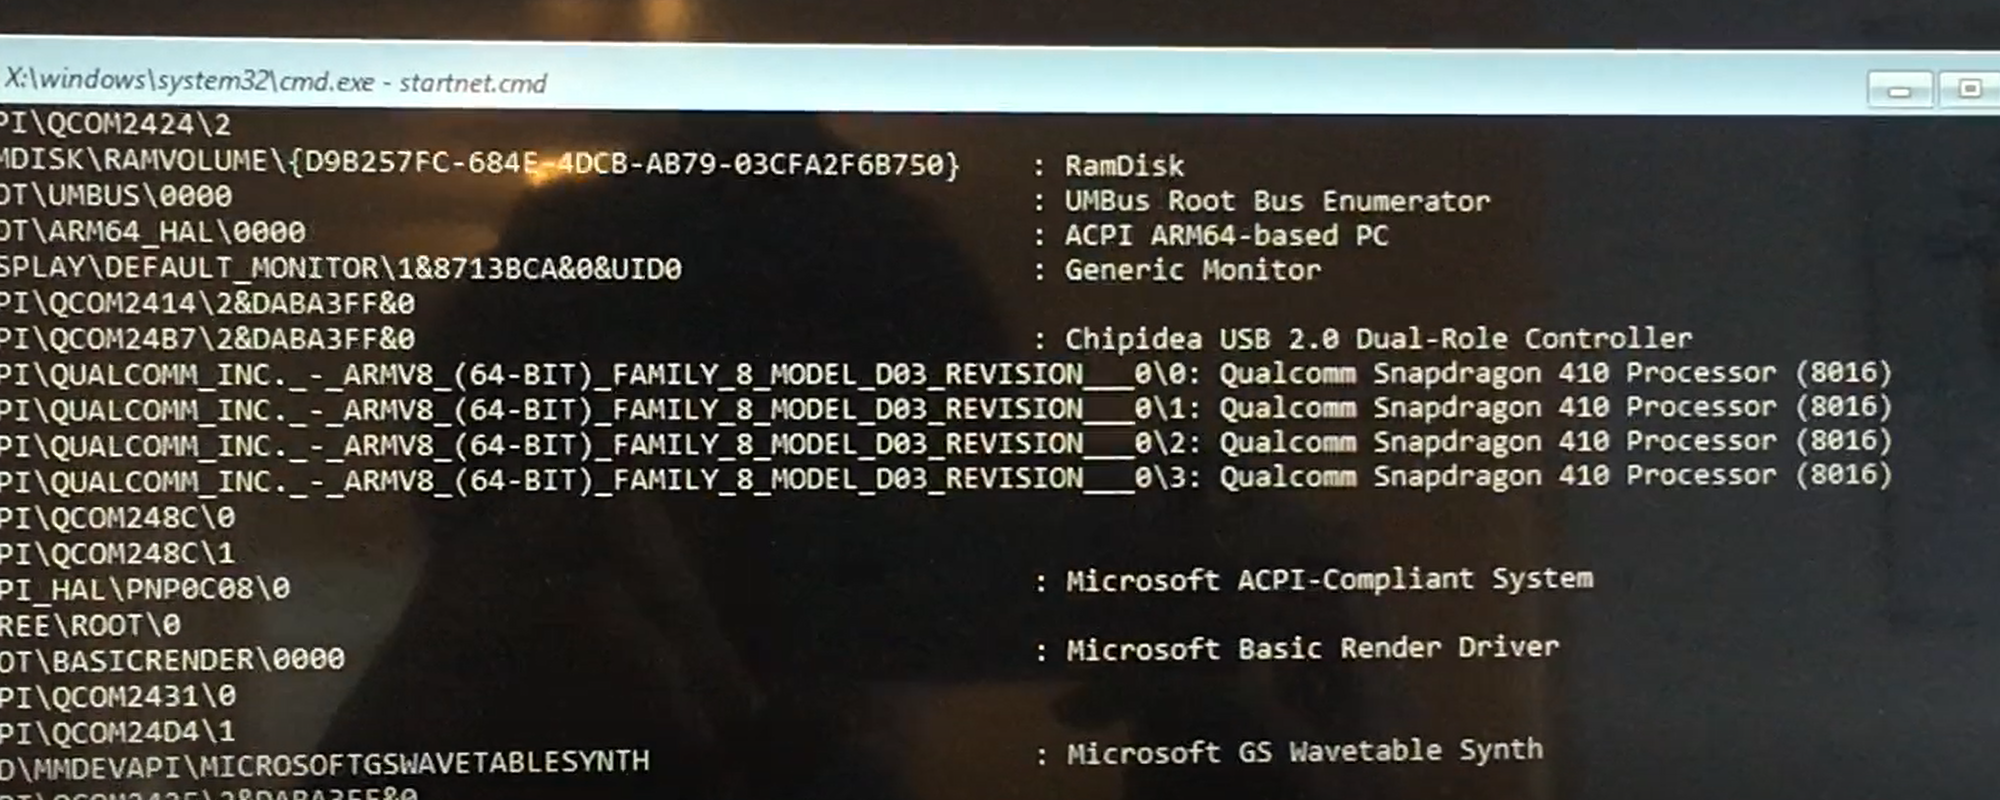 Windows 10 PE runs on a Spandragon 410 processor.